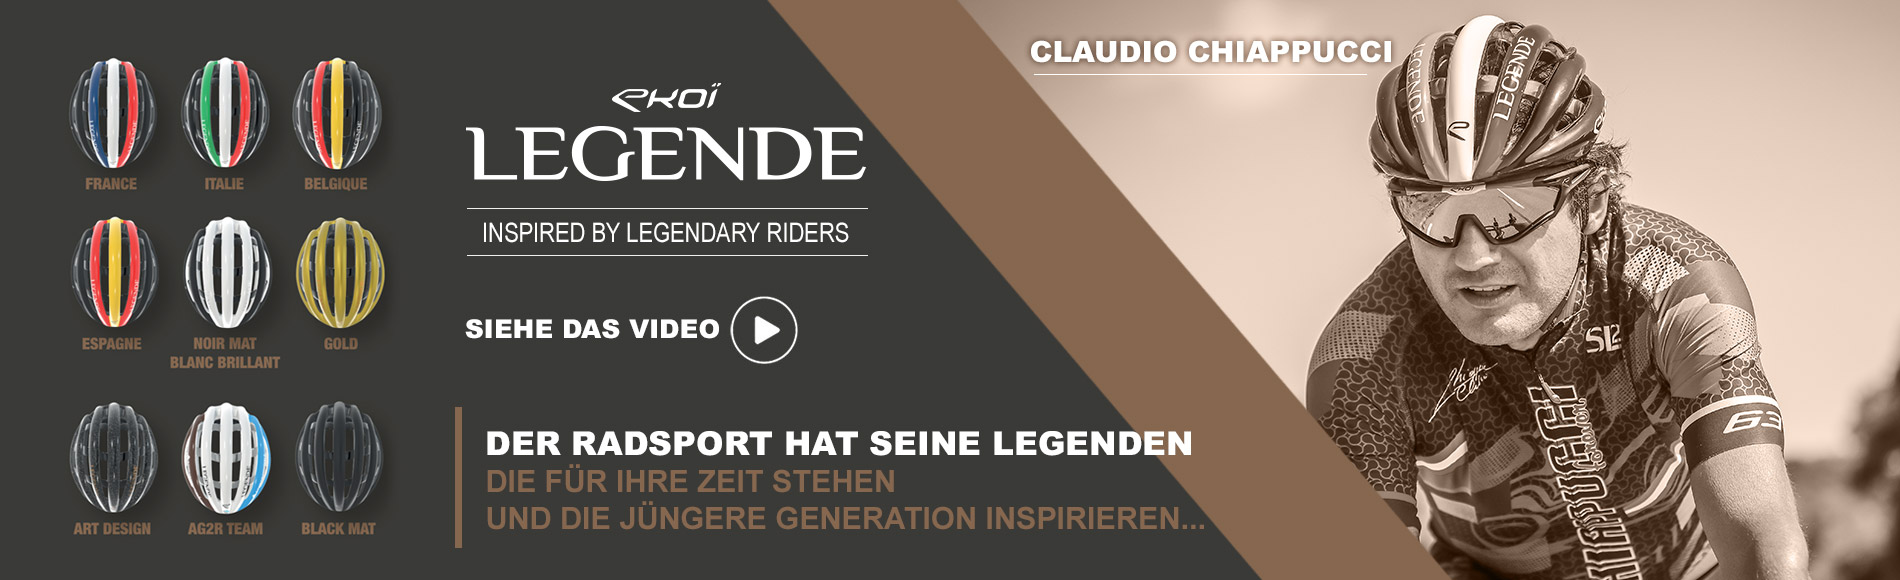 Casque EKOI LEGENDE Claudio Chiappucci